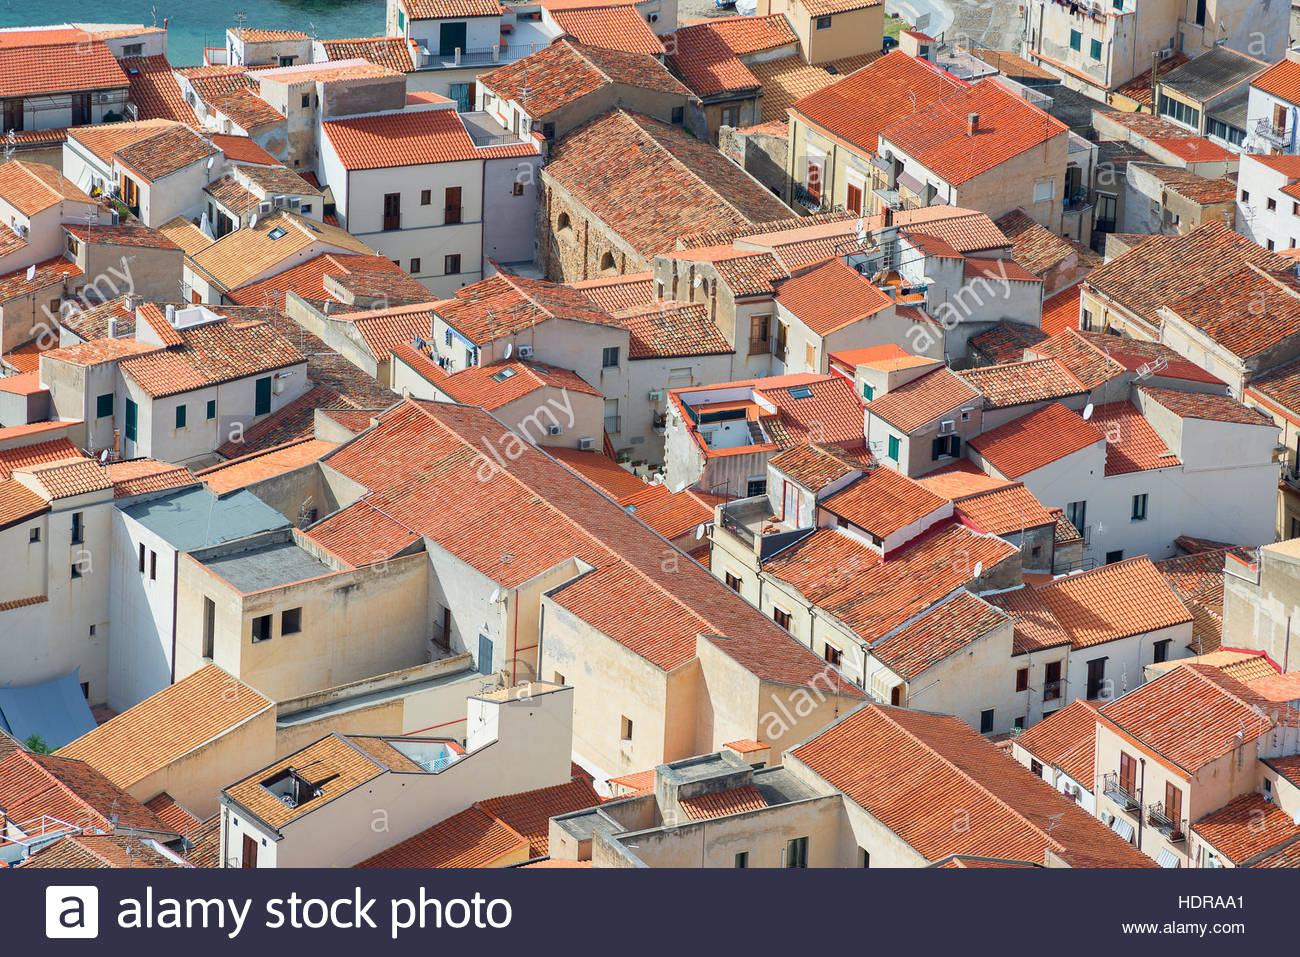 Aerial view of Cefalu from La Rocca, Cefalu, Sicily, Italy, Europe - Stock Image